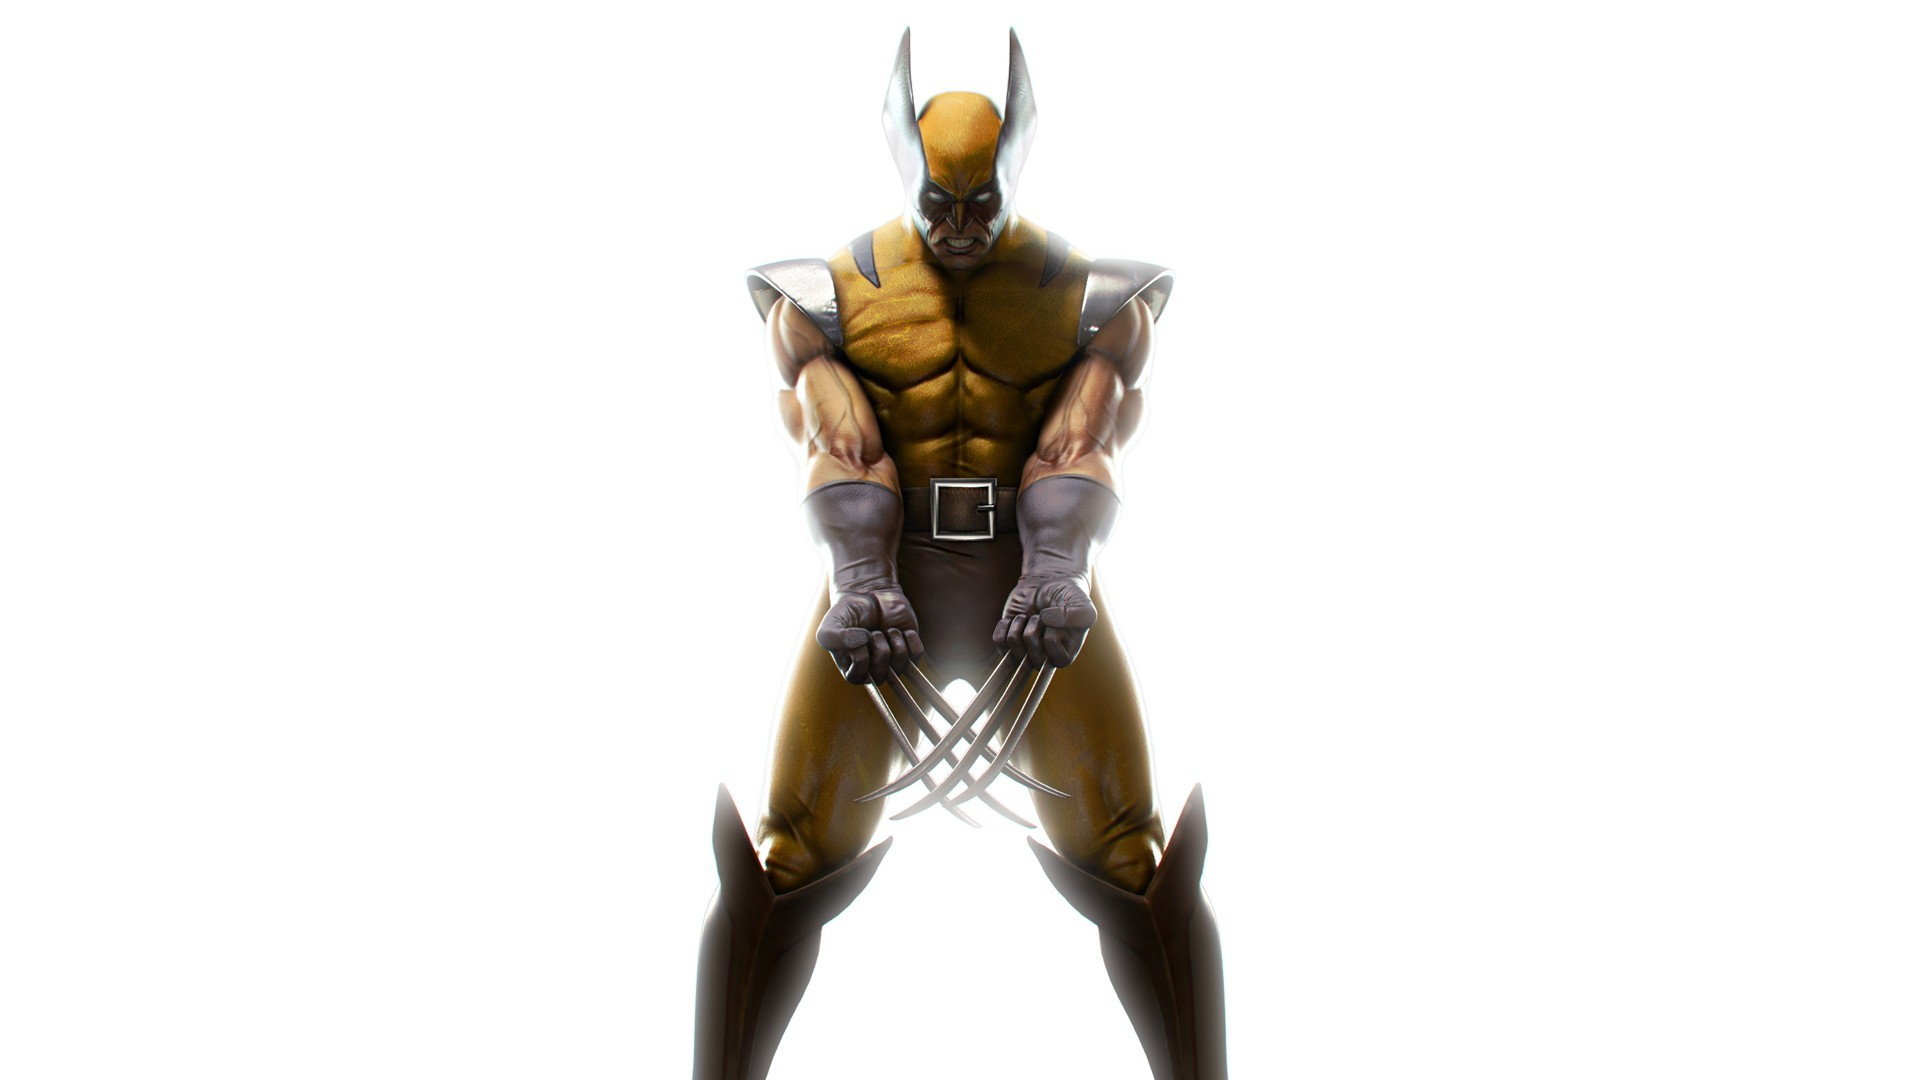 1920x1080 Wolverine Computer Wallpapers Desktop Backgrounds x